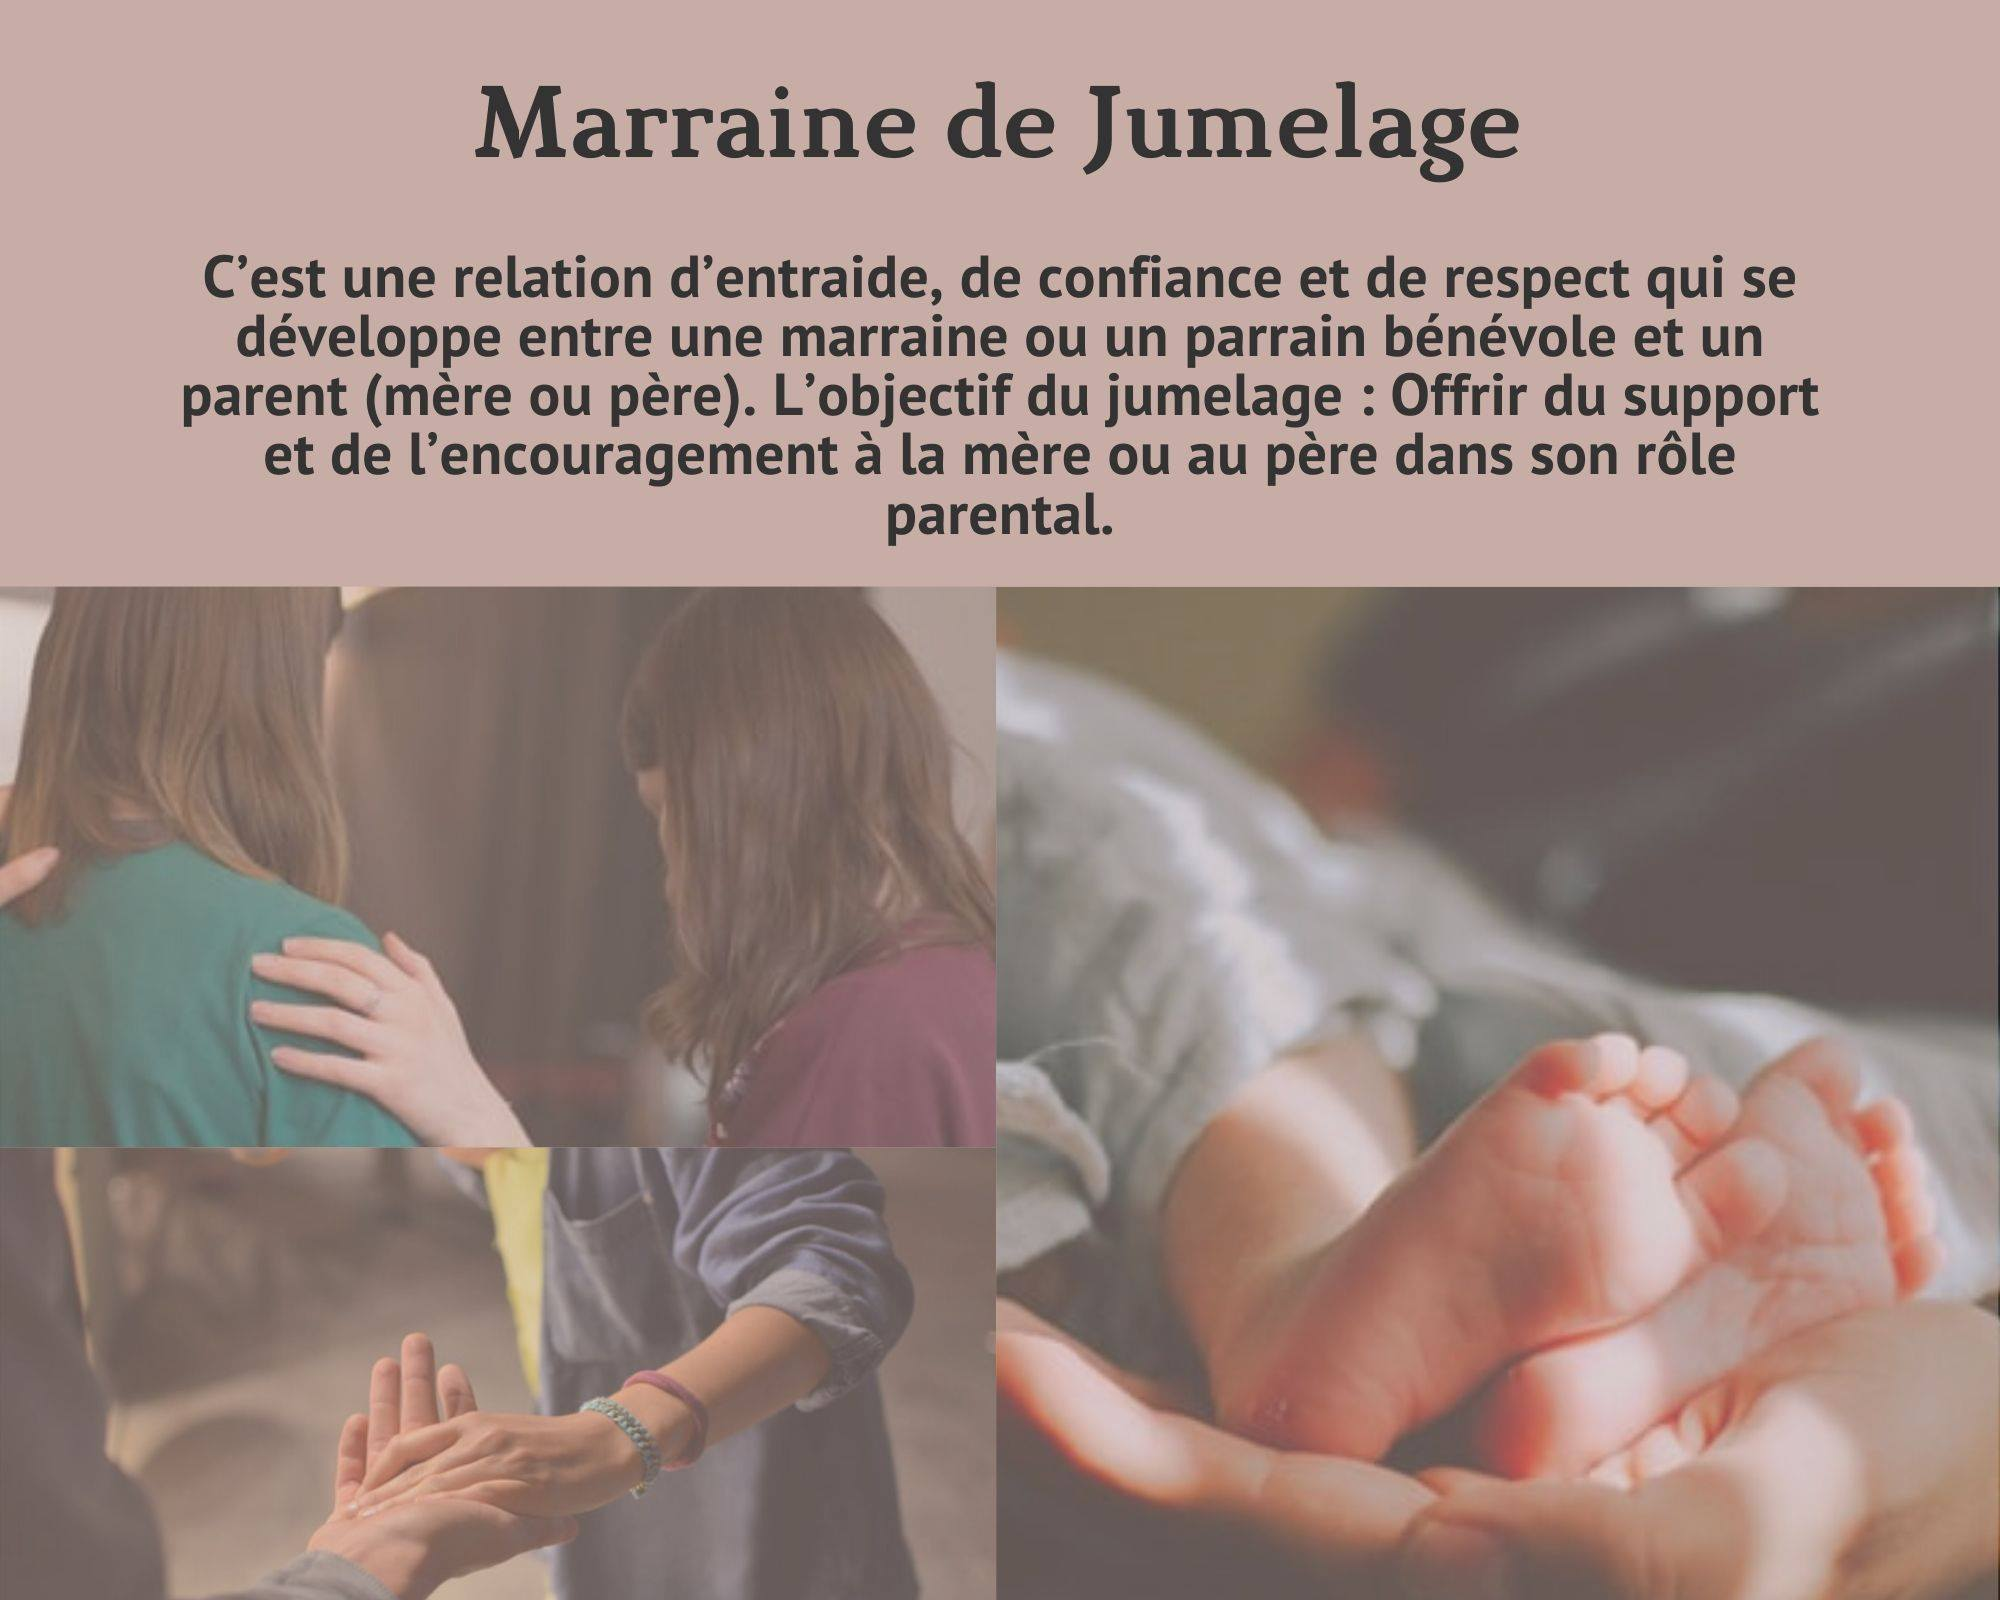 Marrainesjumelage